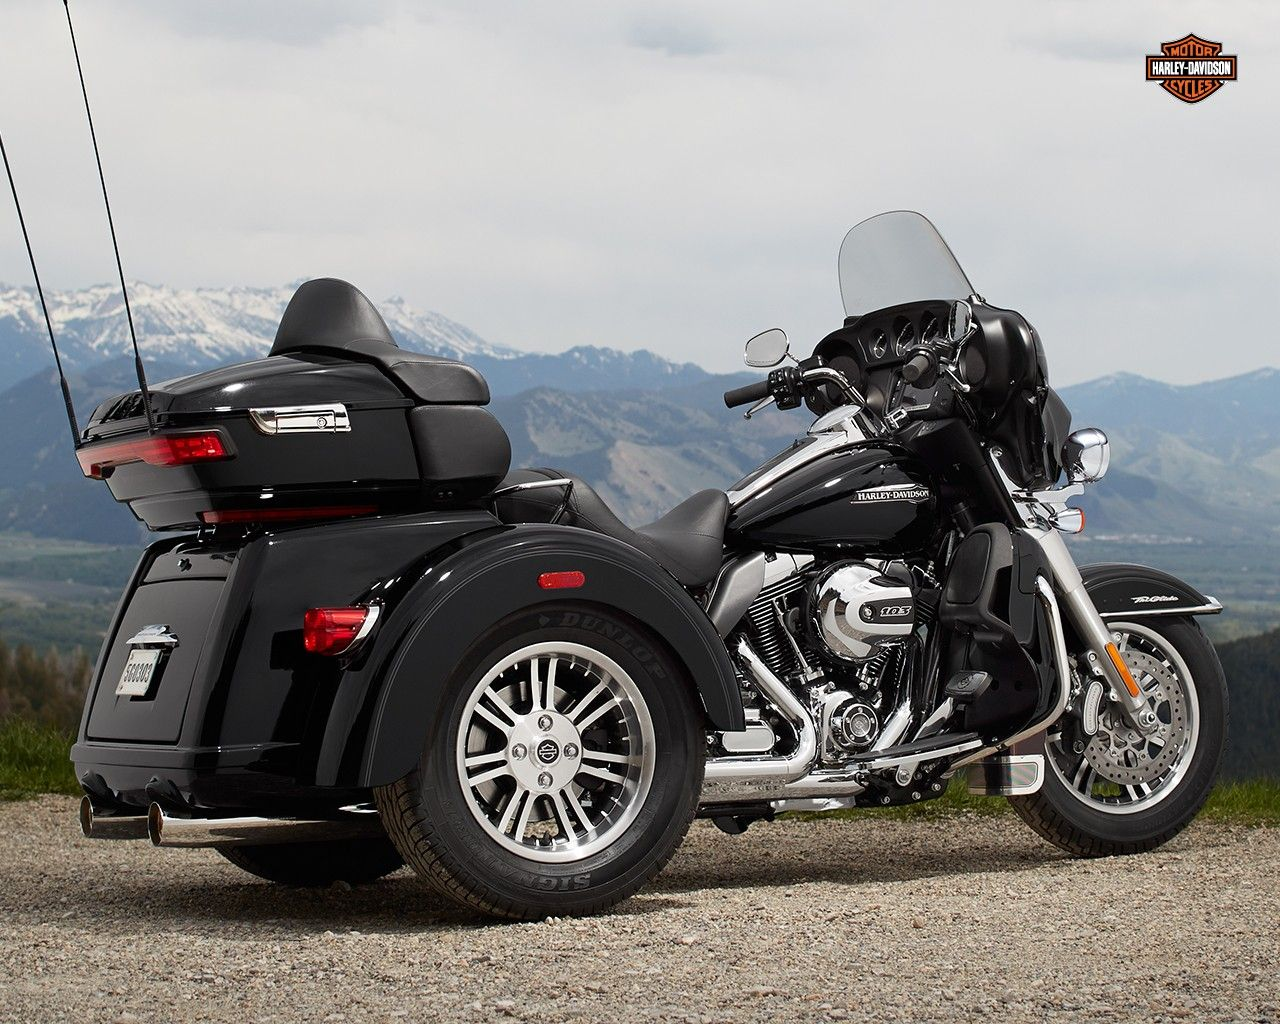 Tri Glide Wallpaper: 15-hd-tri-glide-ultra-wallpaper-2